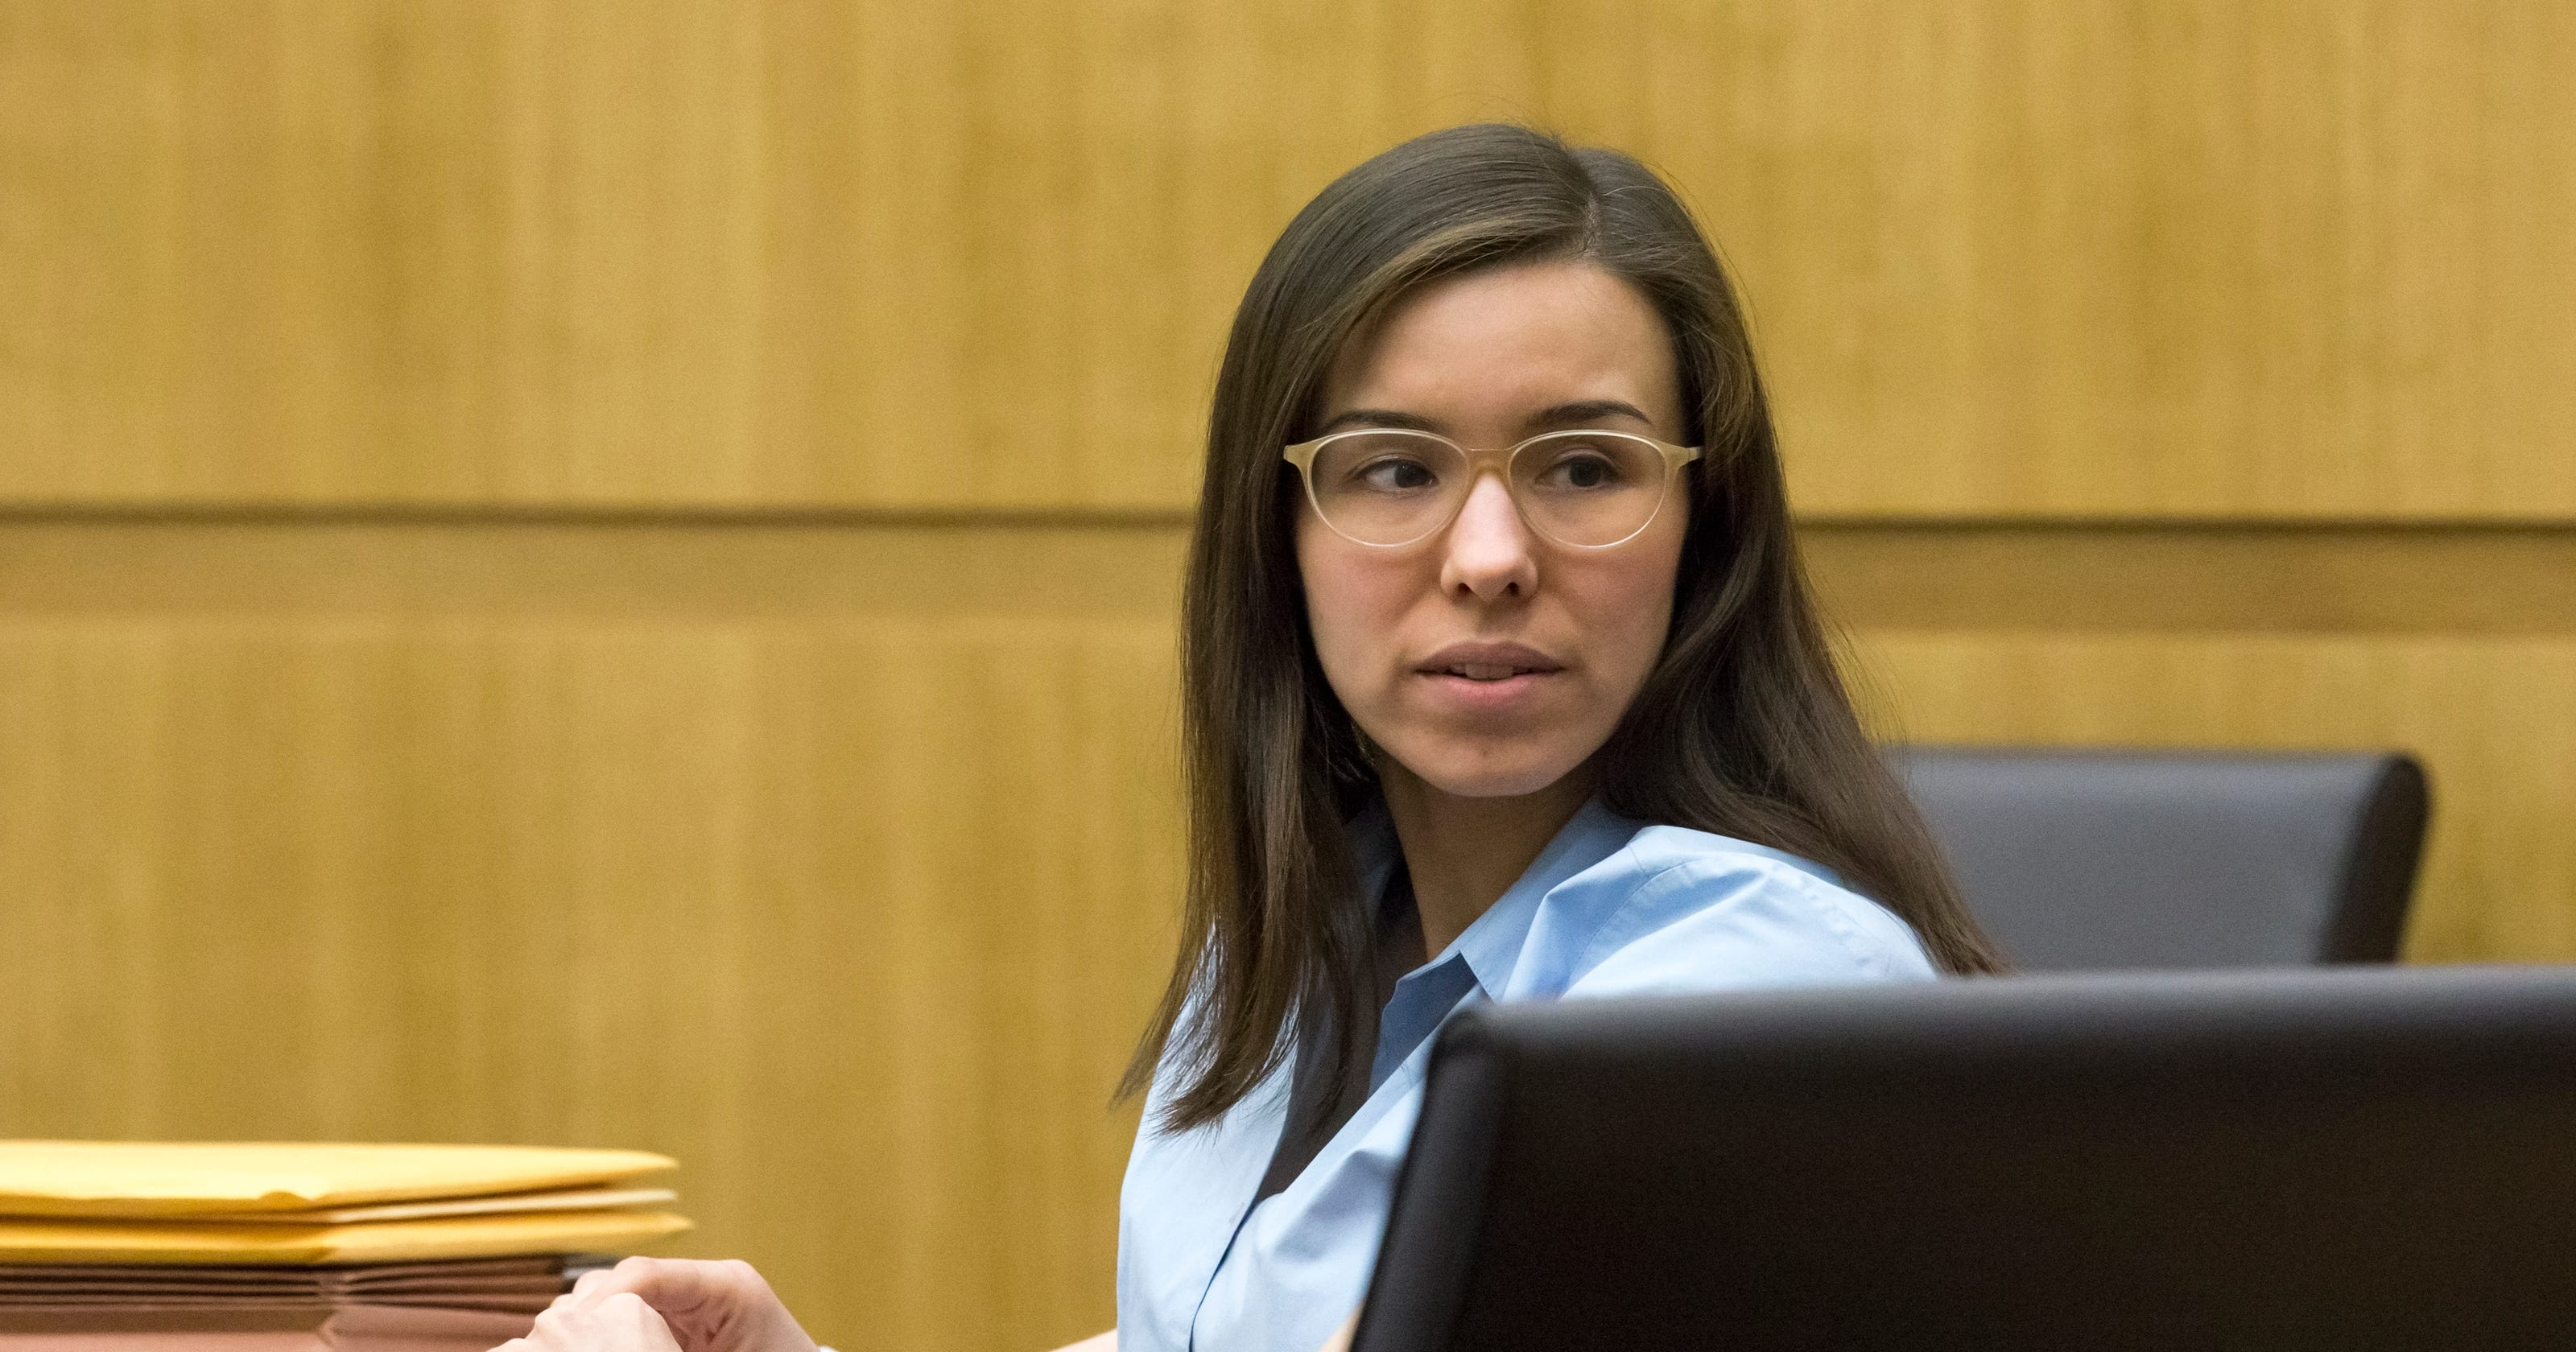 Jodi Arias Sex Pics jodi arias trial: twitter reacts to the verdict